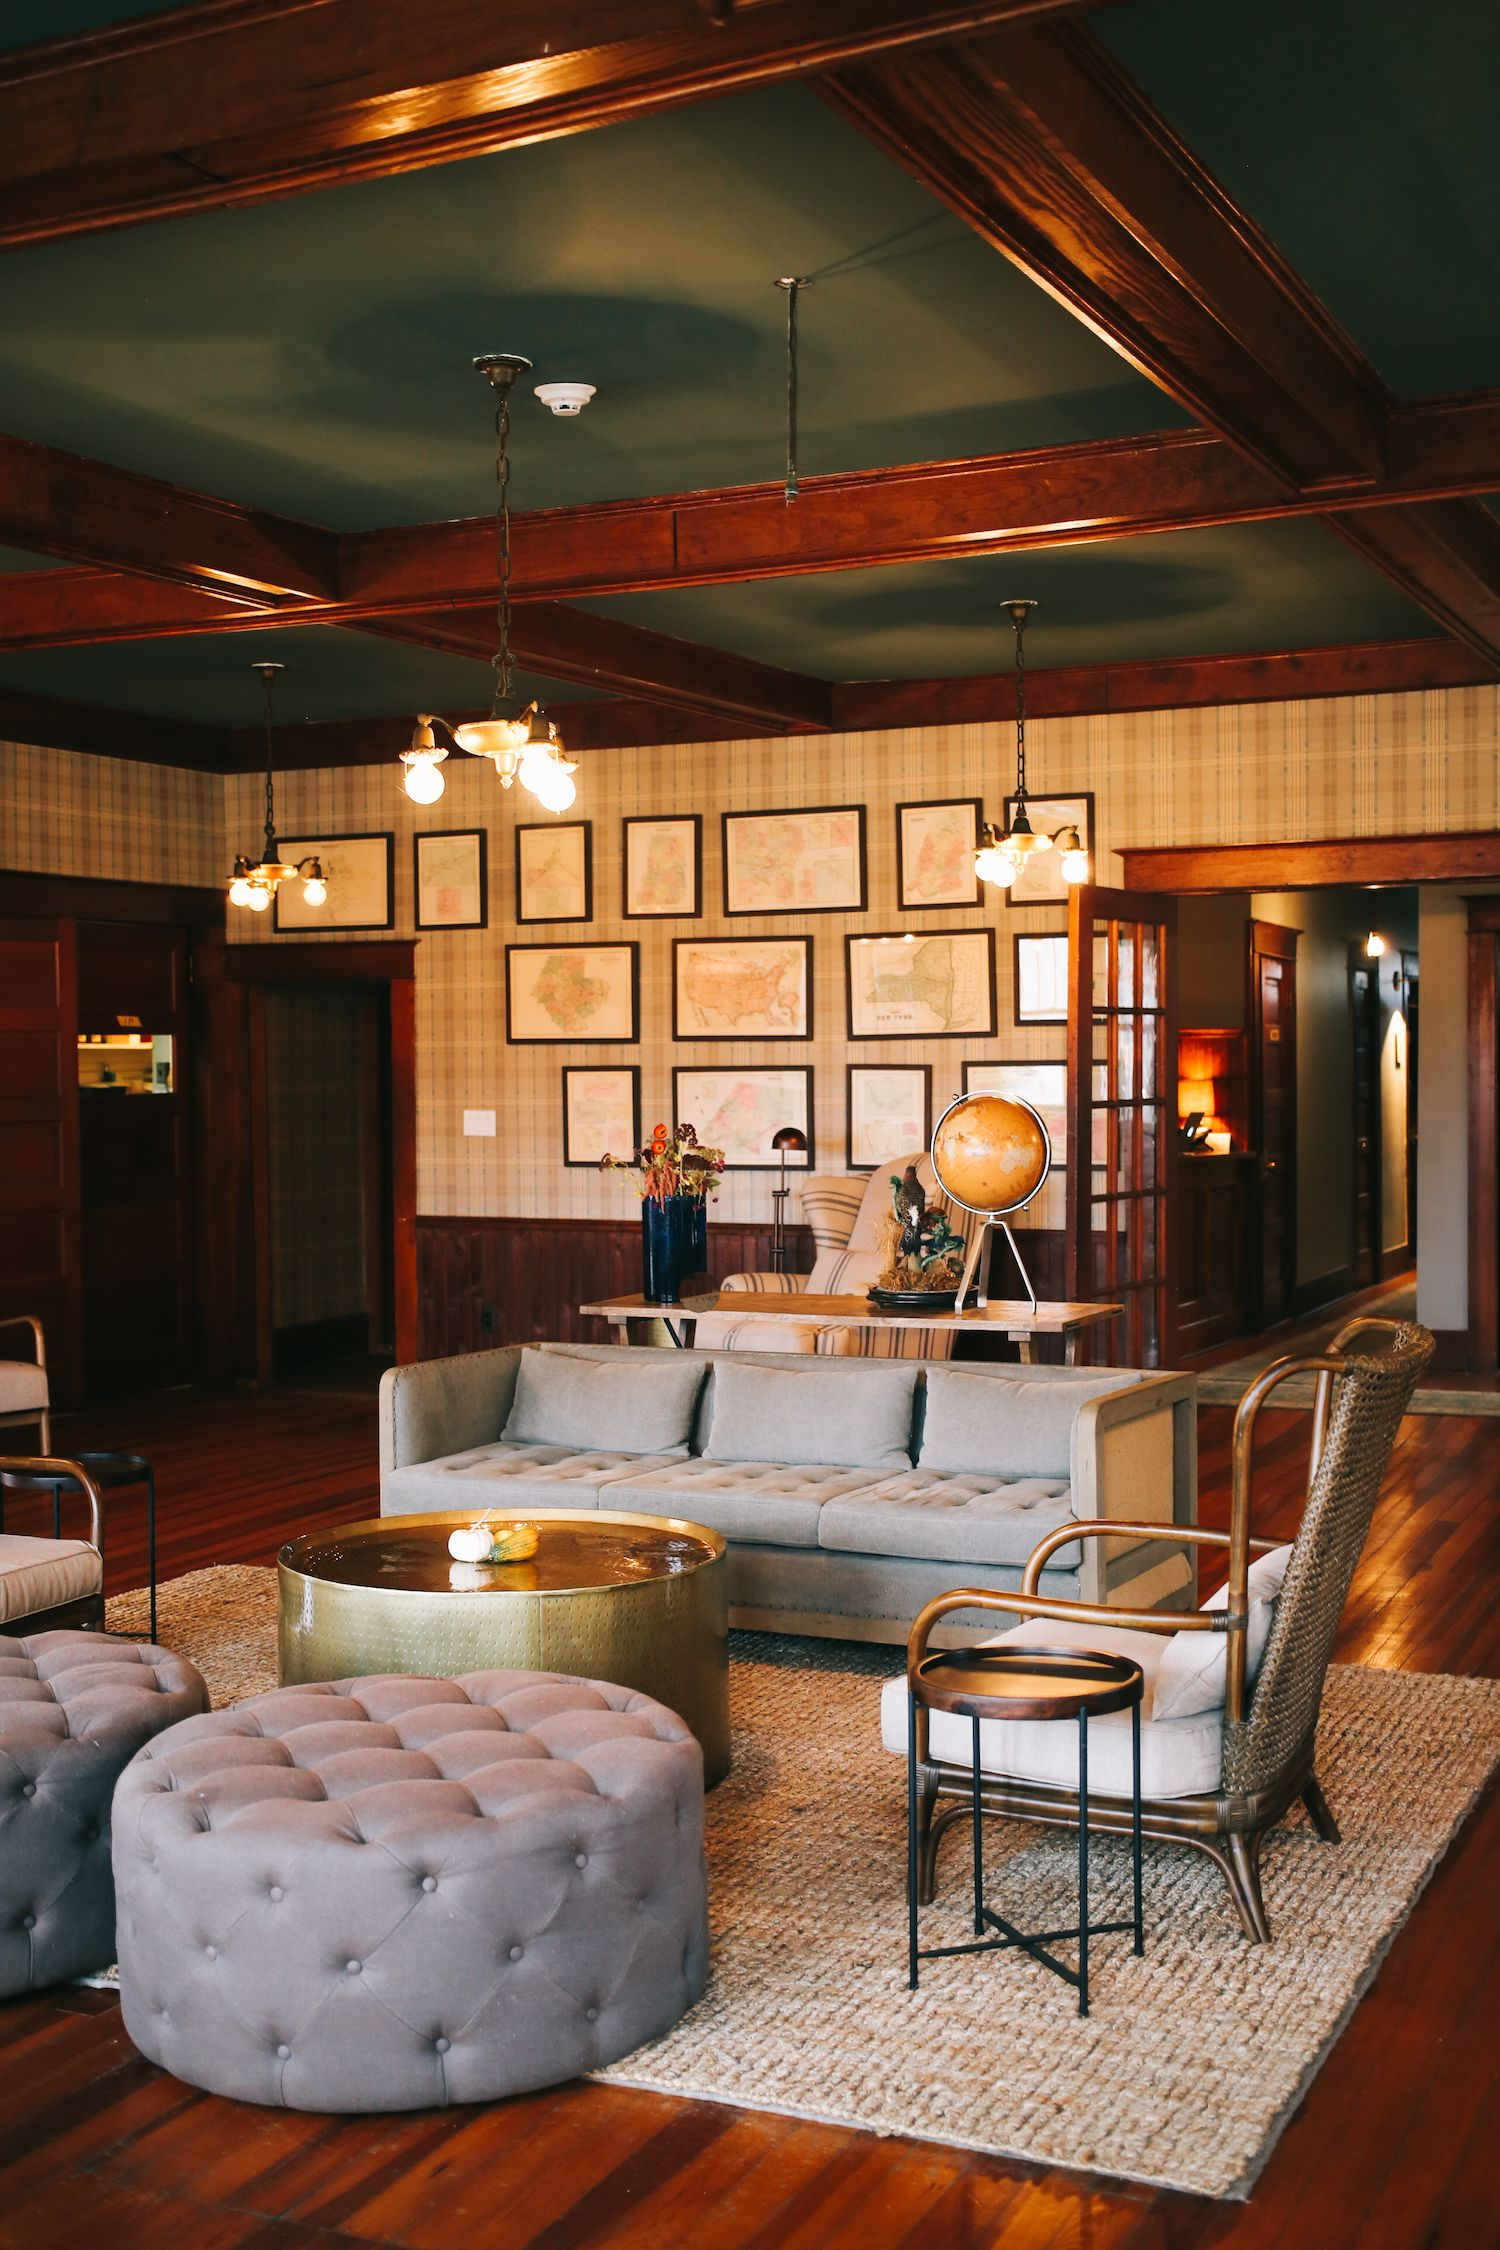 10 Places to Stay in Upstate New York Our Top Picks (With